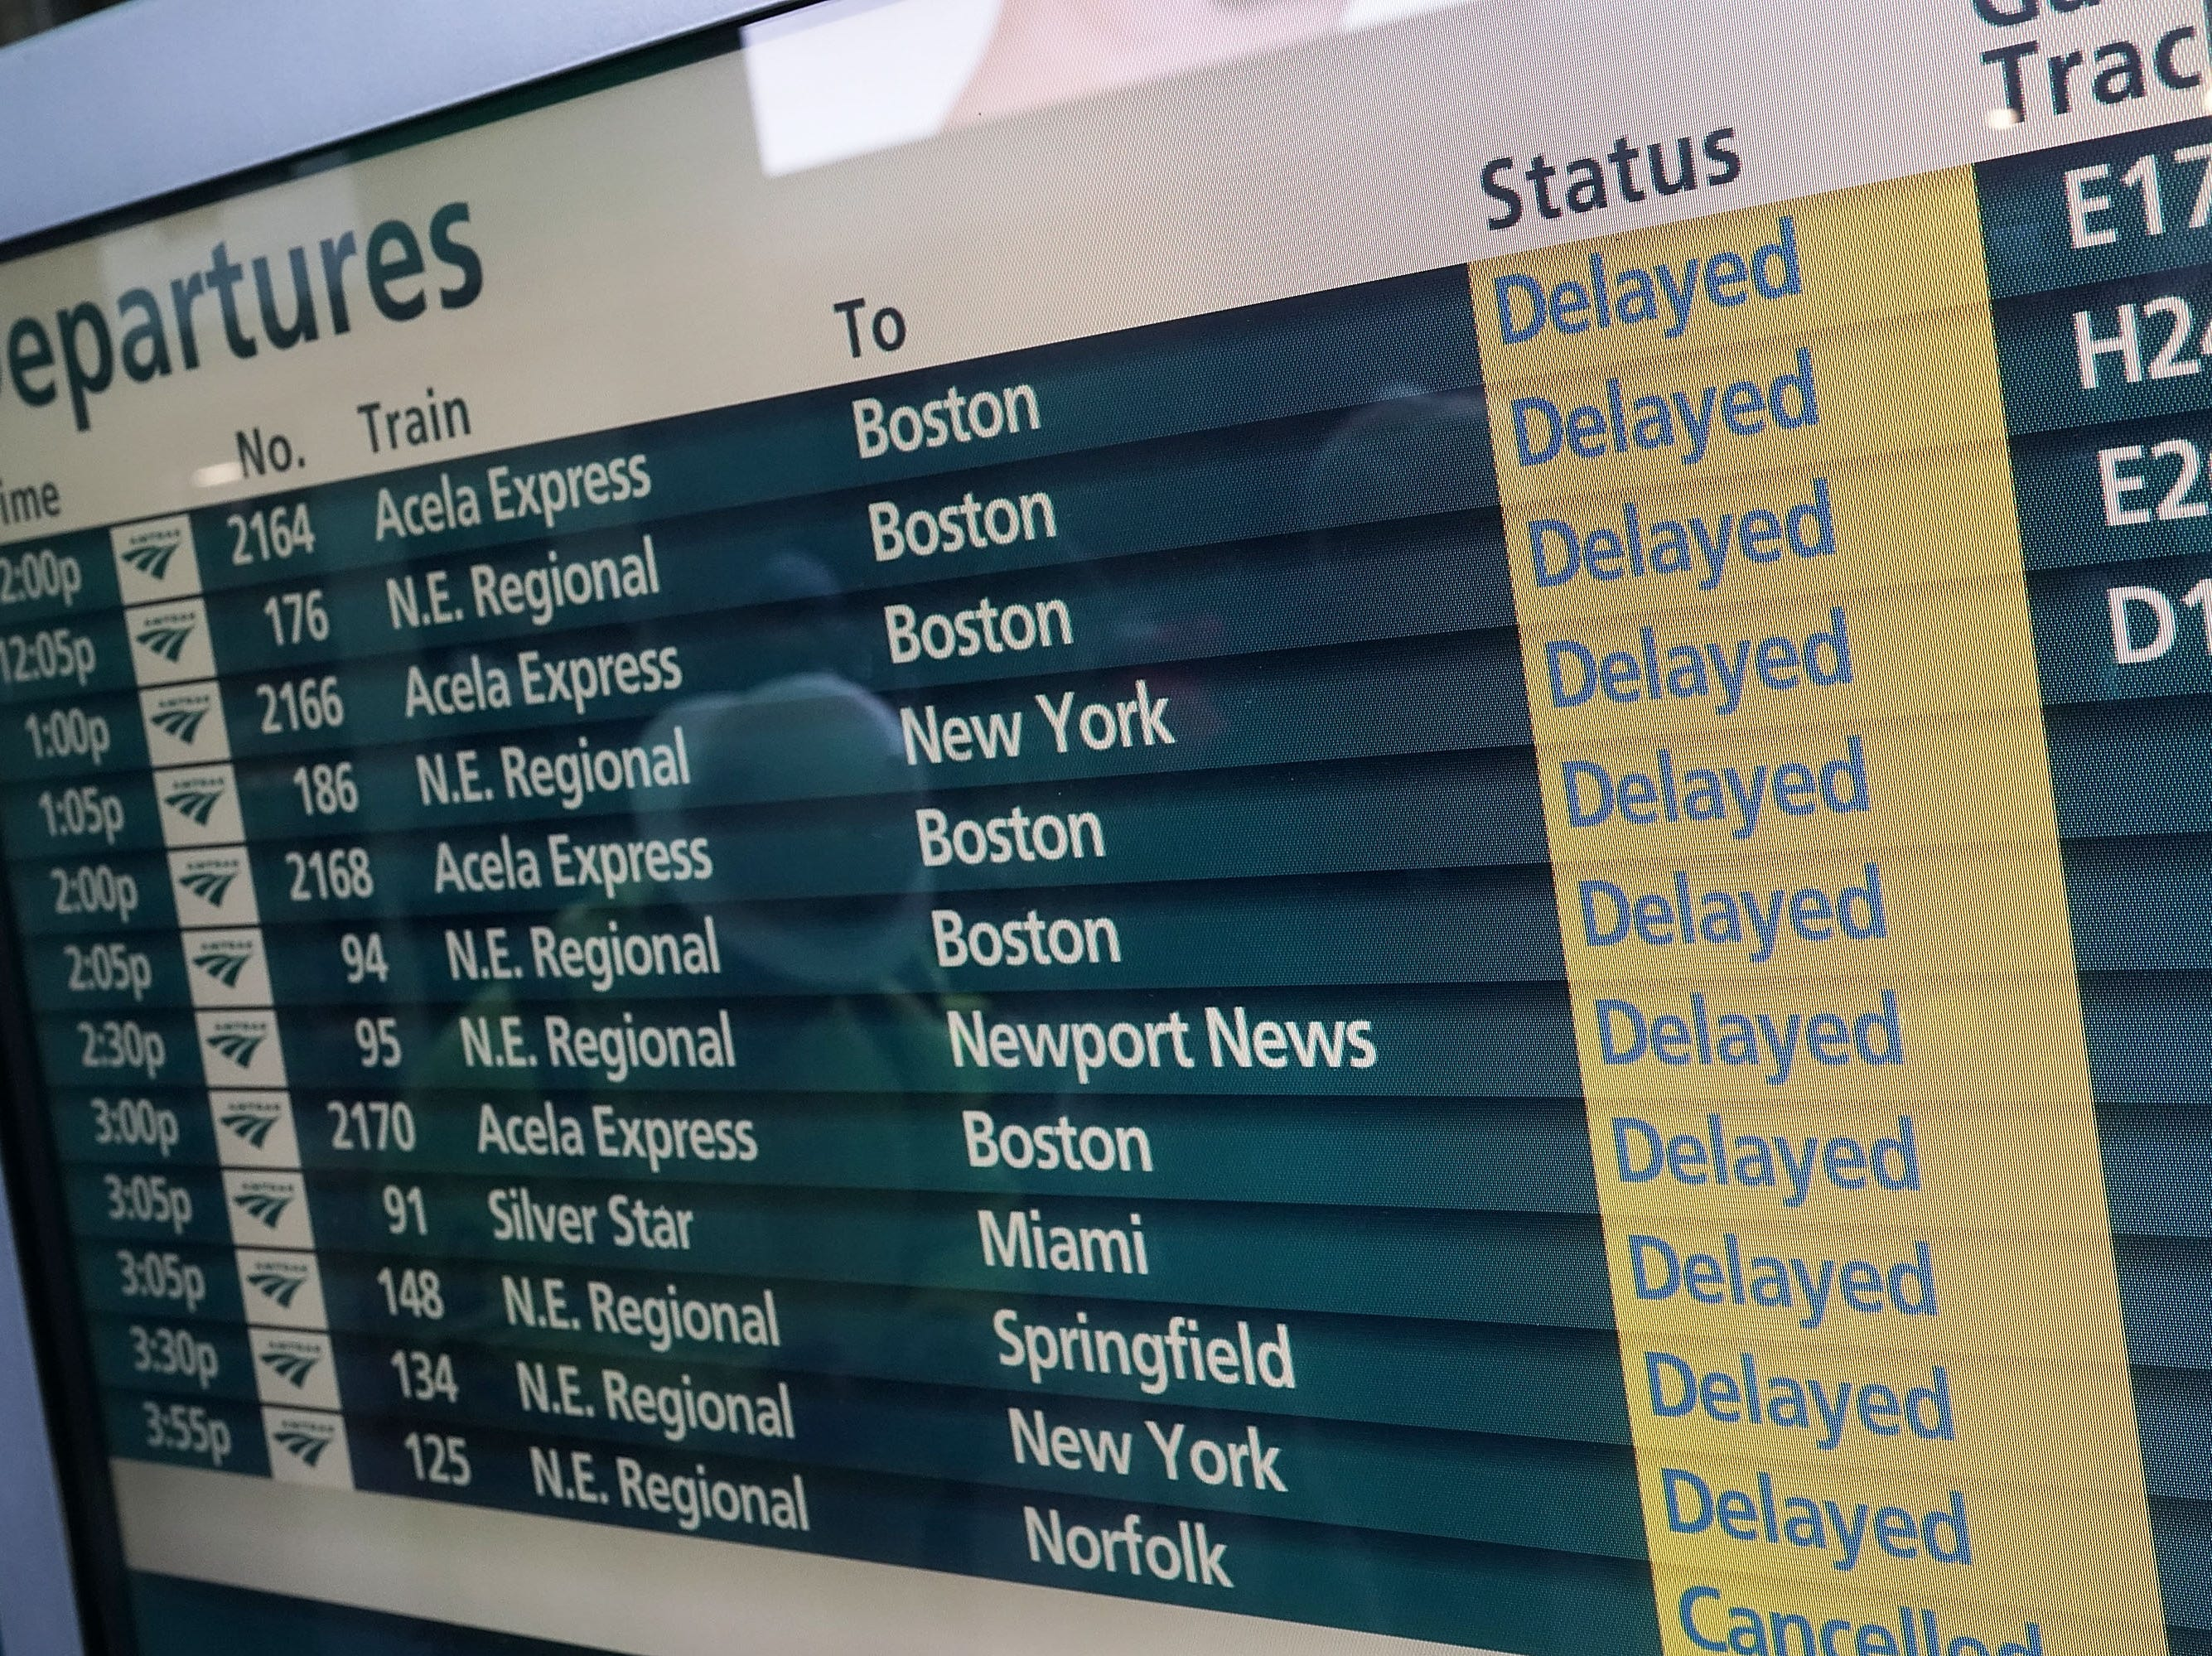 WASHINGTON, DC - MARCH 02:  Service delays are shown on a bulletin board March 2, 2018 at Union Station in Washington, DC. Amtrak has cancelled all service on its Northeast Corridor from Washington, DC to Boston until tomorrow due to multiple weather related issues.  (Photo by Alex Wong/Getty Images)